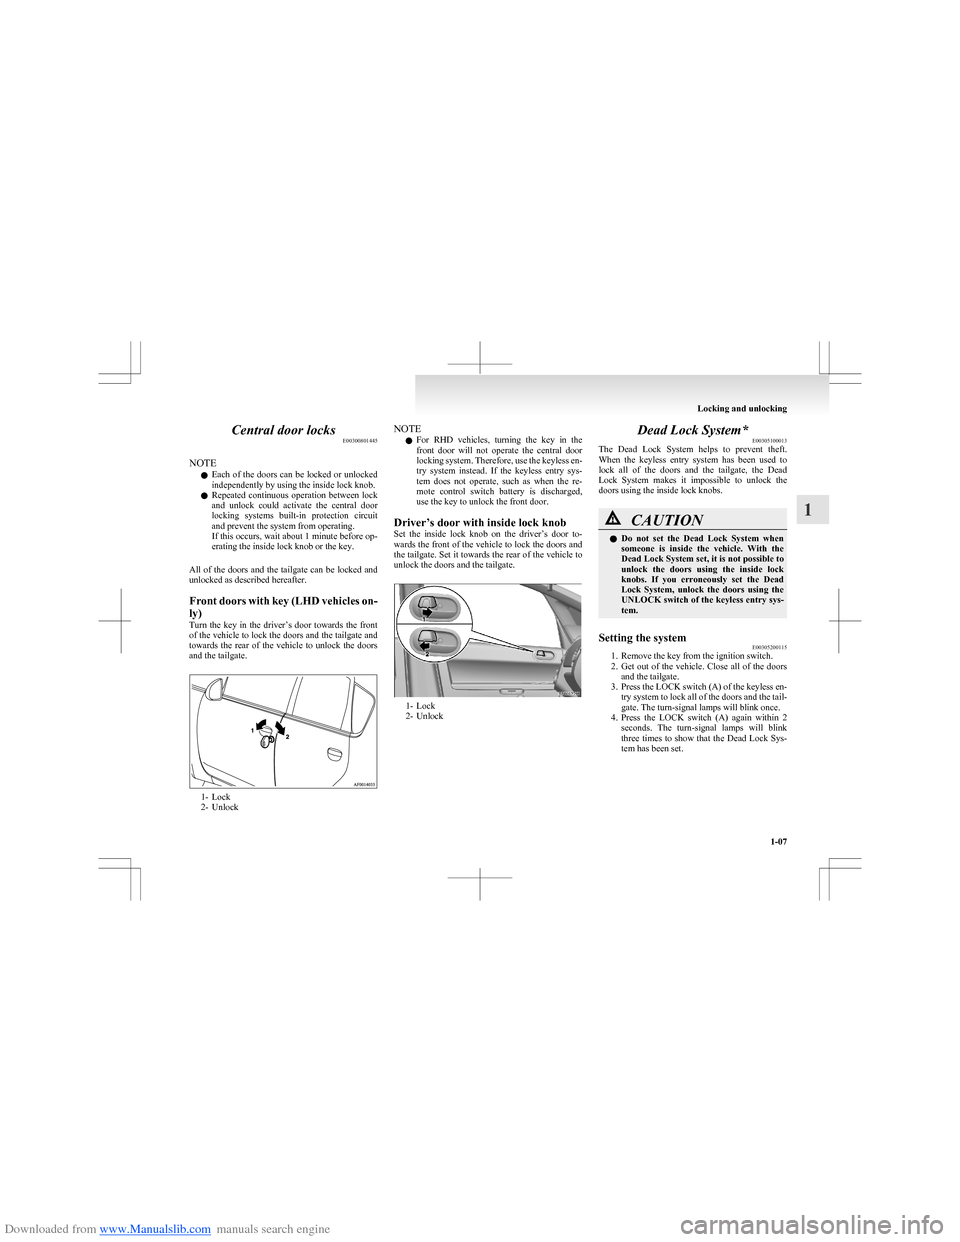 MITSUBISHI COLT 2009 10.G Owners Manual, Page 34